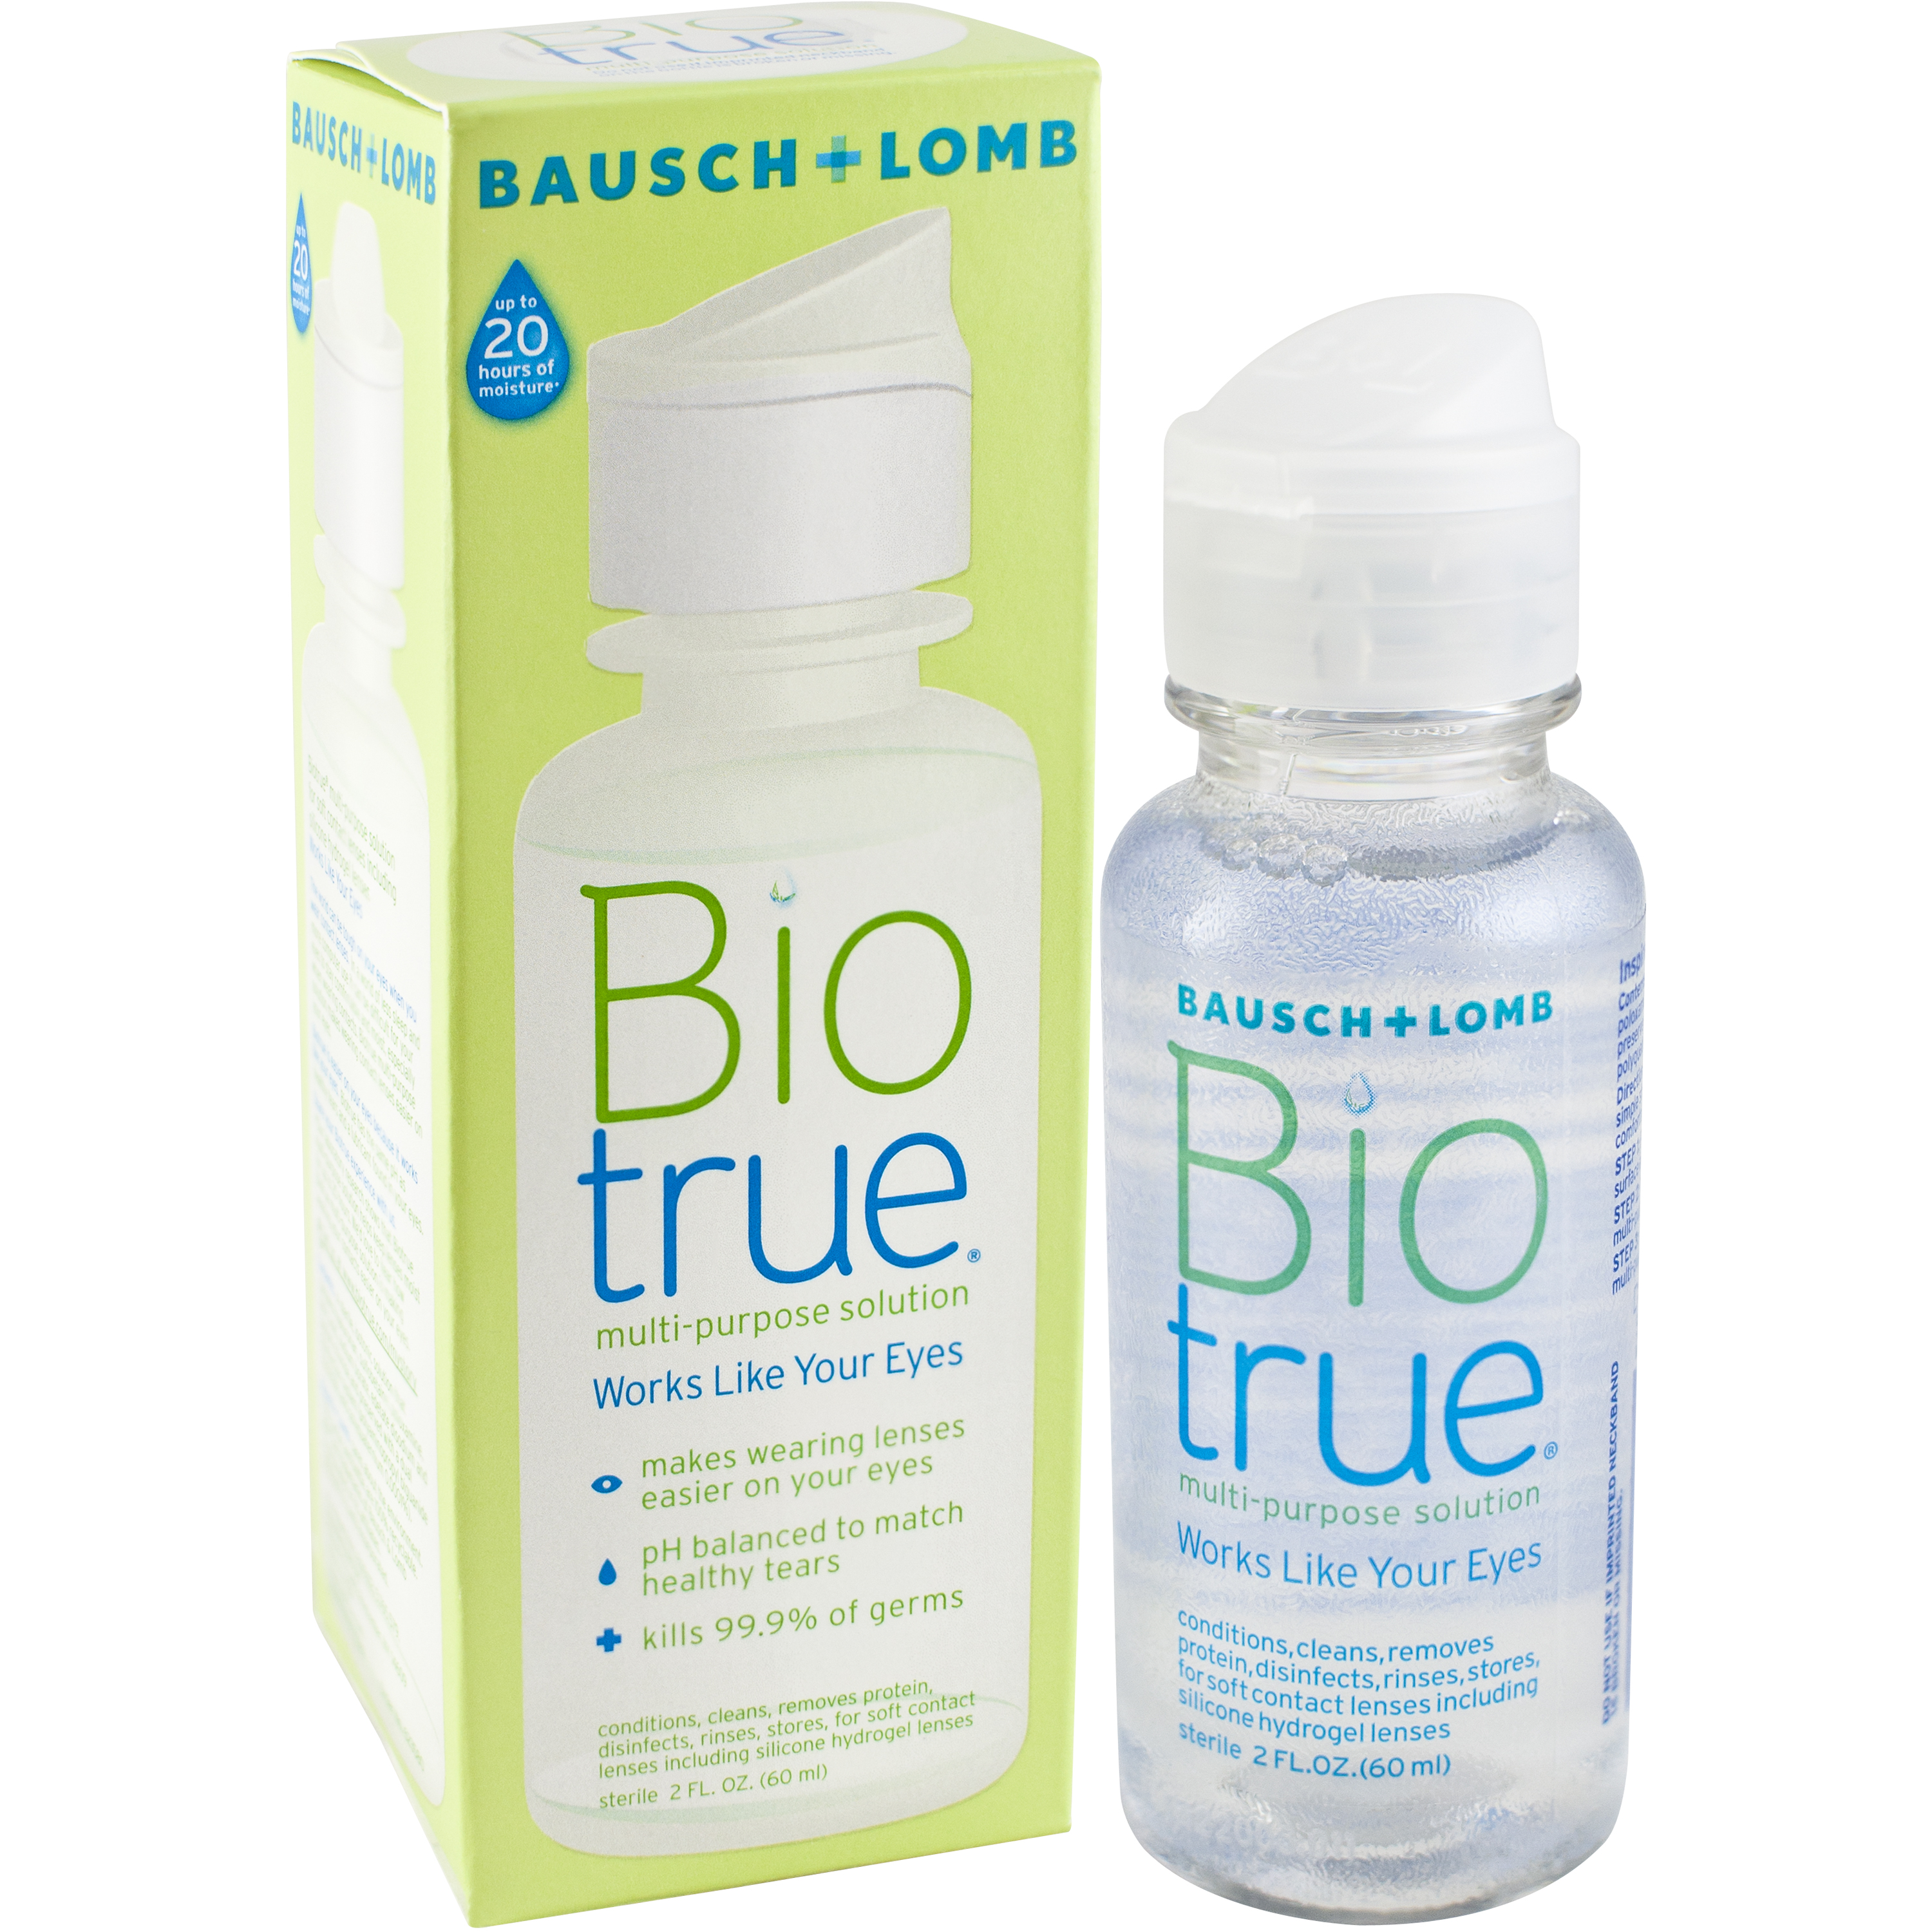 Bausch & Lomb Biotrue Multi-Purpose Solution, 2 fl oz